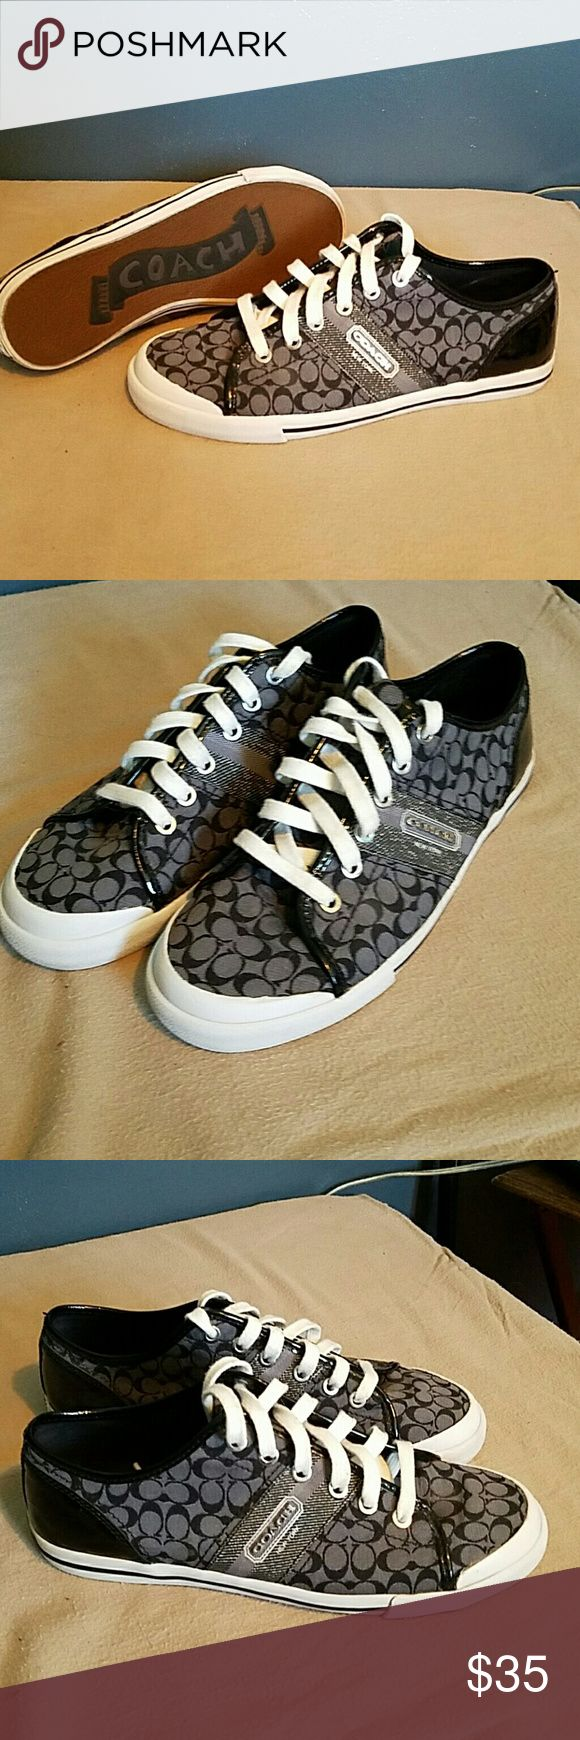 Super Fun Coach tennis shoes size 9B Super cute and fun. Only worn a couple times. Coach Shoes Sneakers